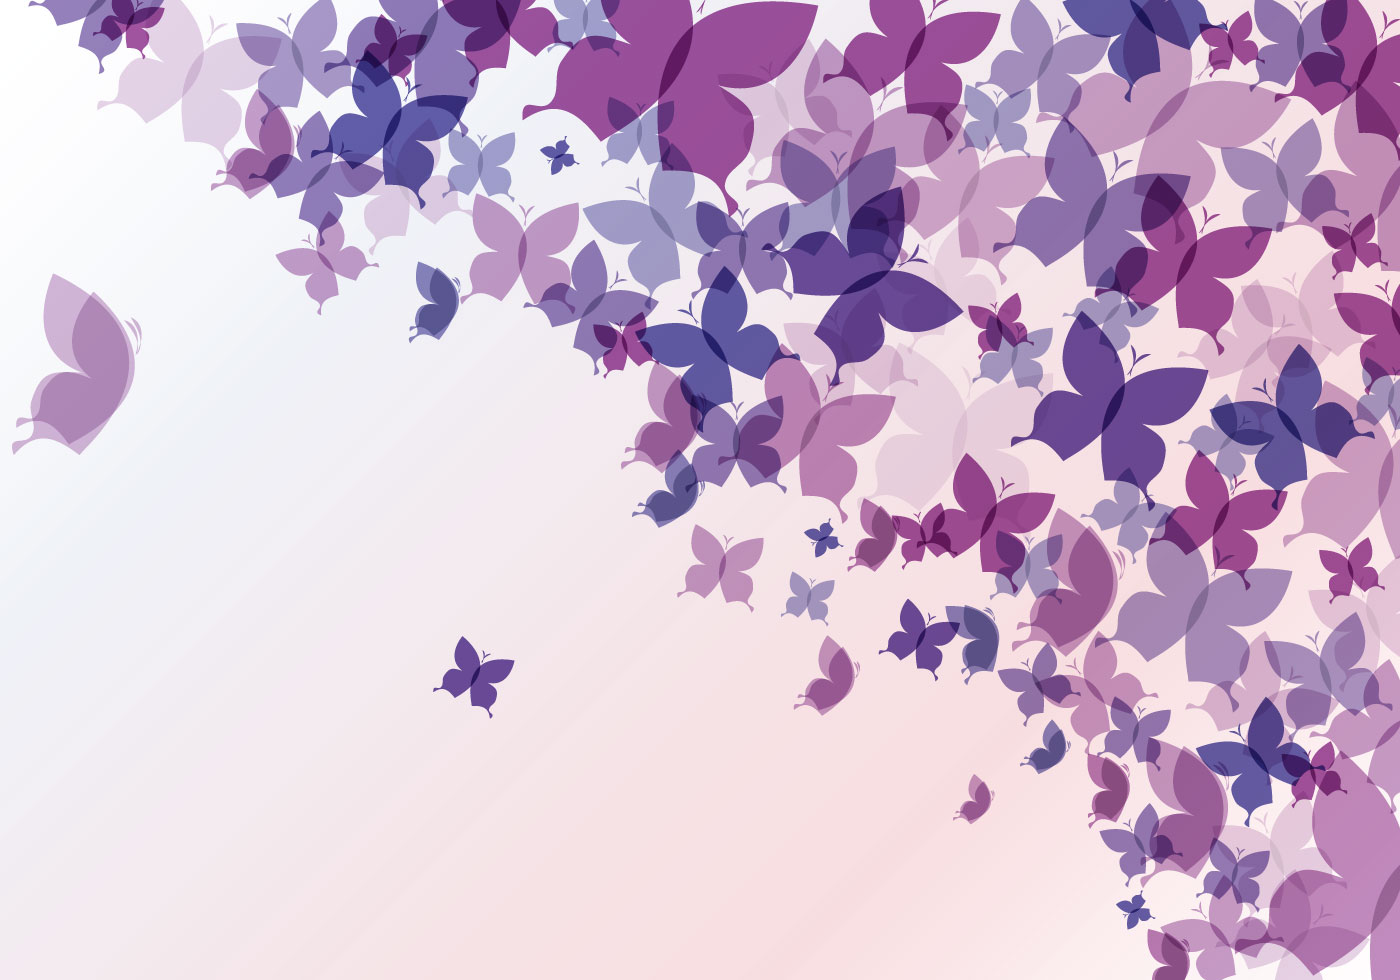 abstract butterfly background download free vector art